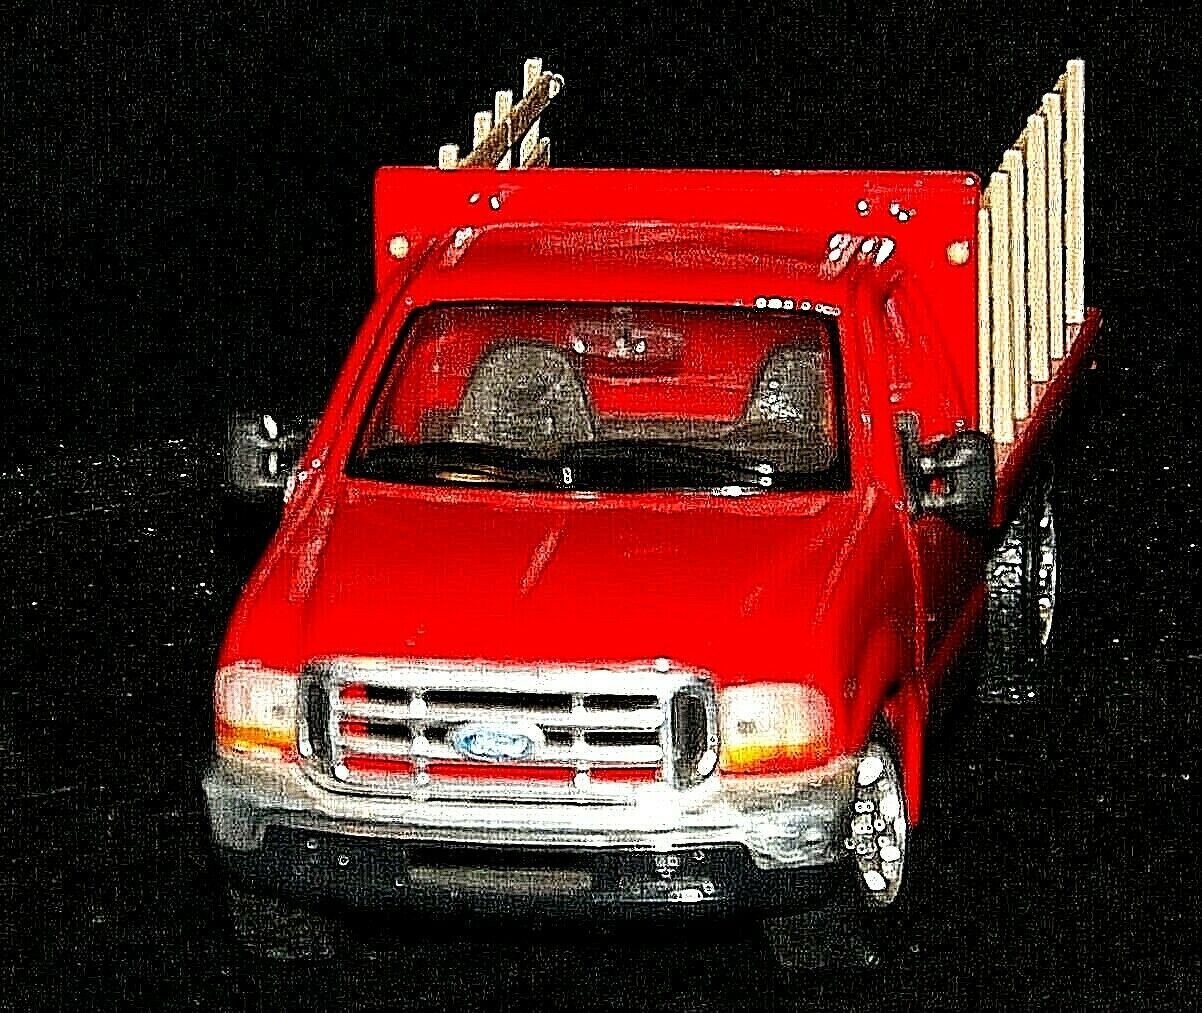 Maisto Ford 350 die-cast replica toy red truck with hay rack AA19-1646 Vintage